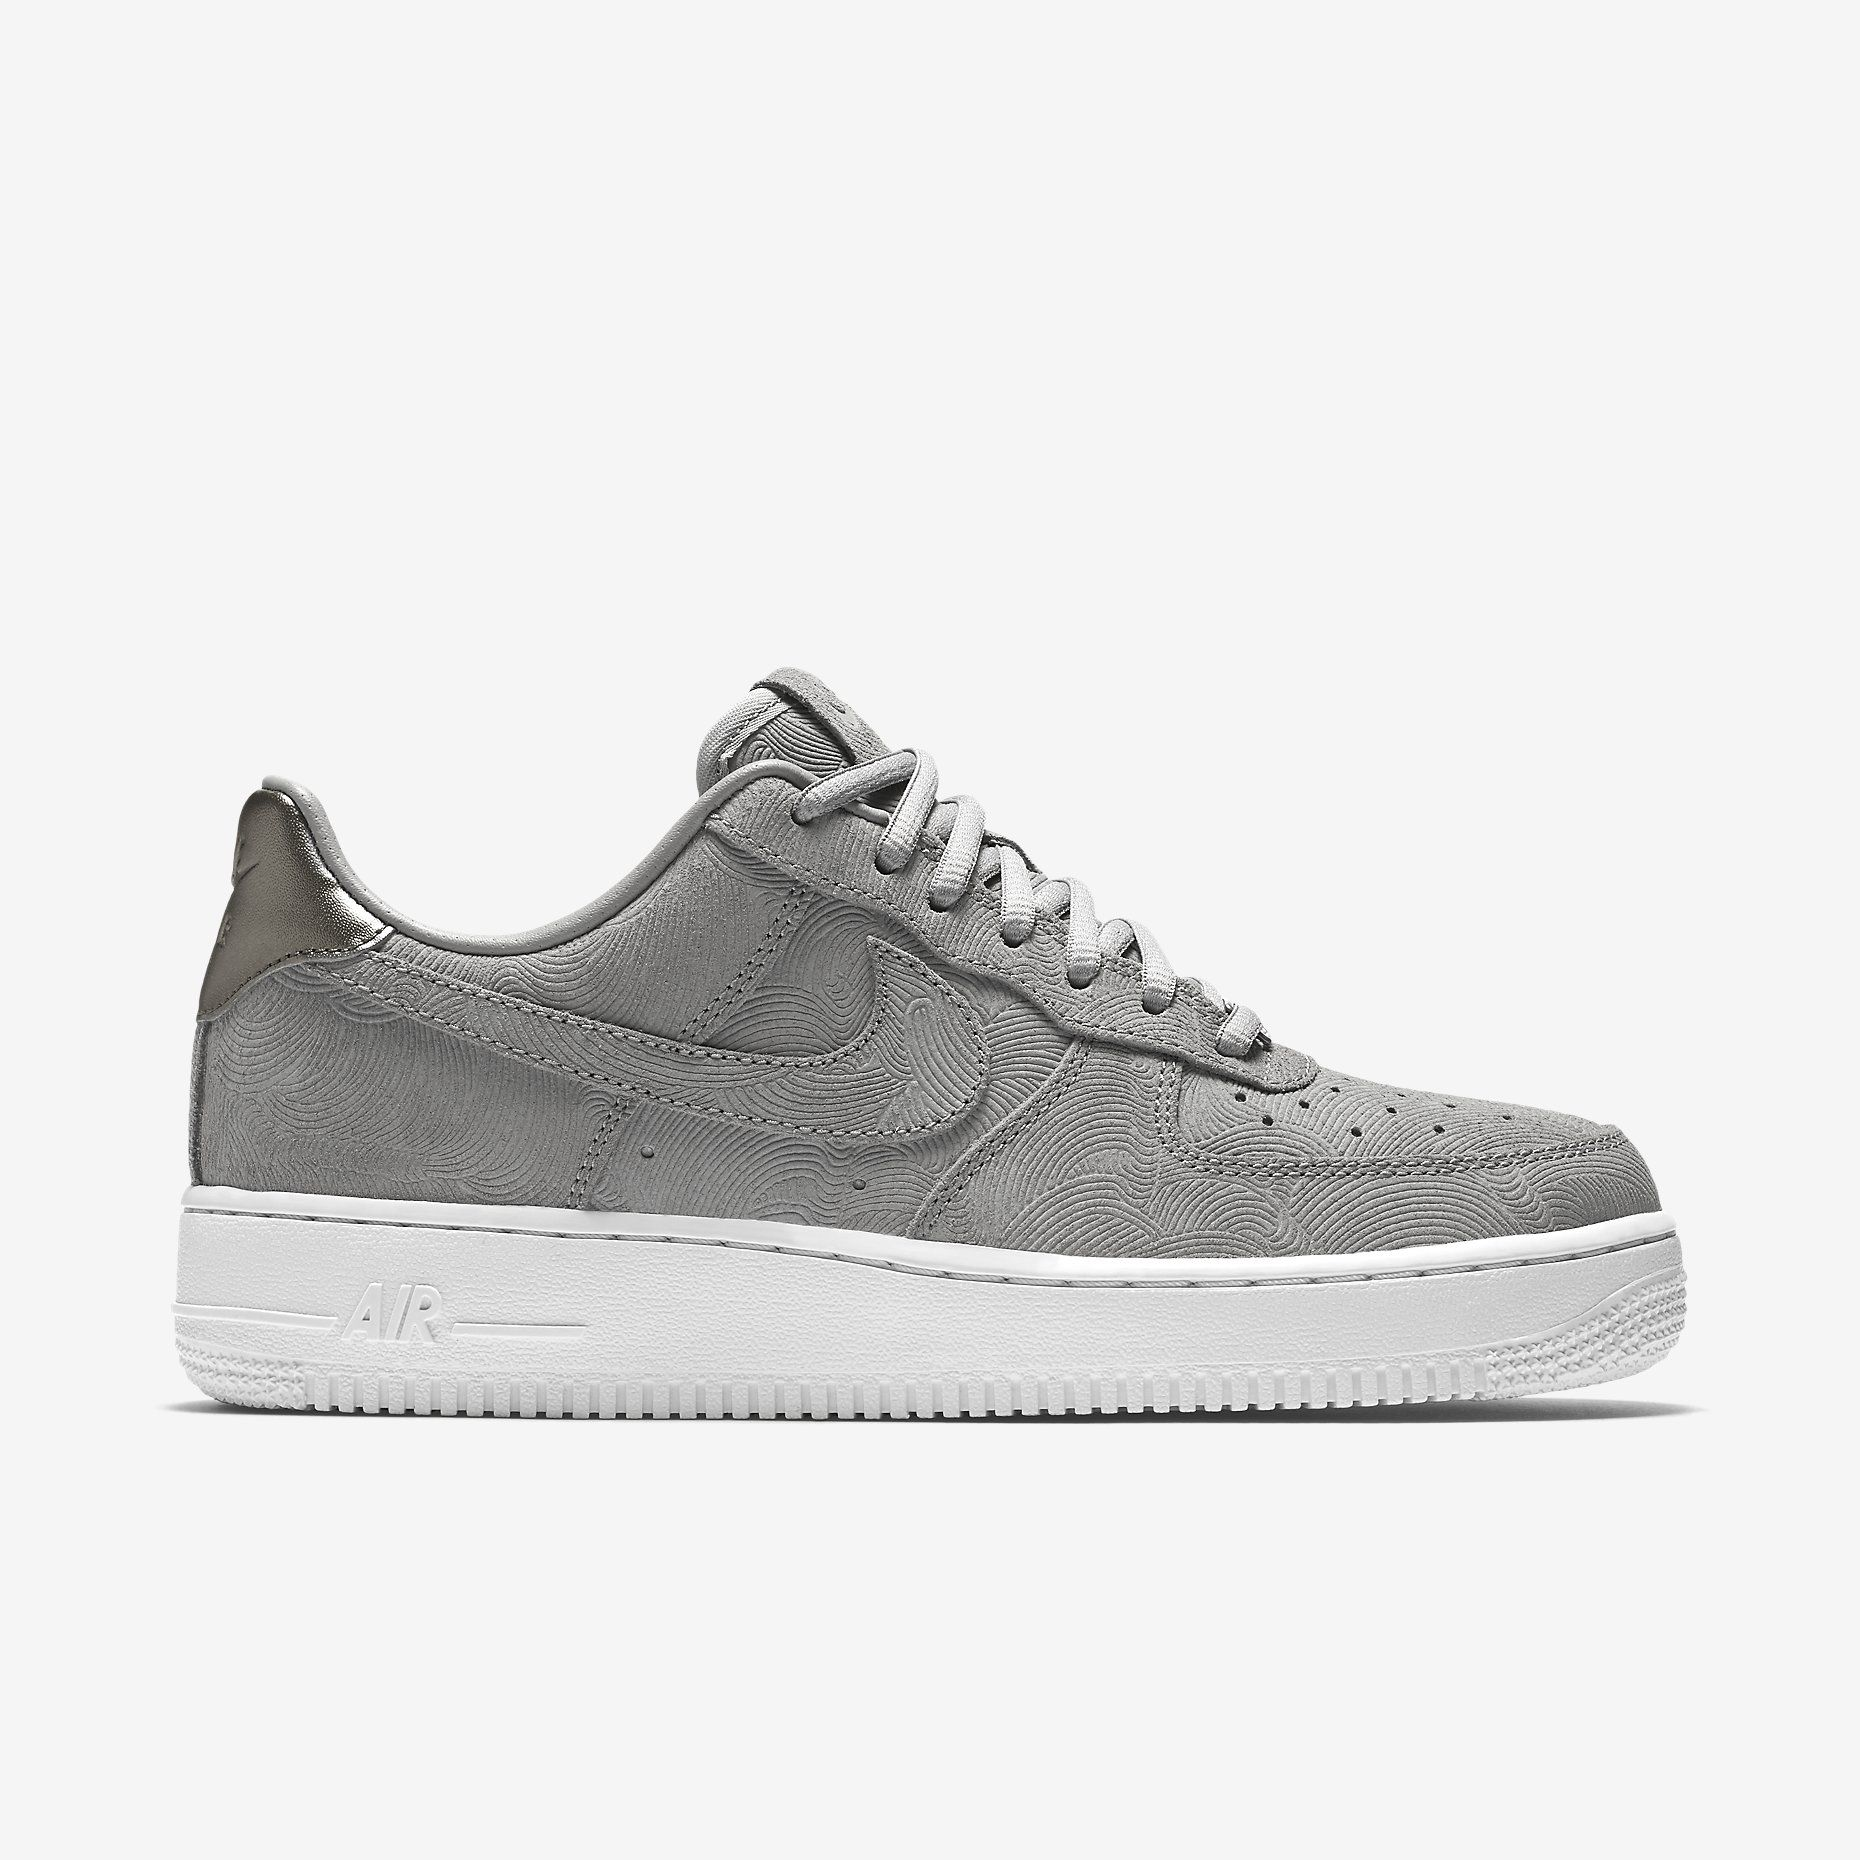 Shop Nike for shoes, clothing & gear at